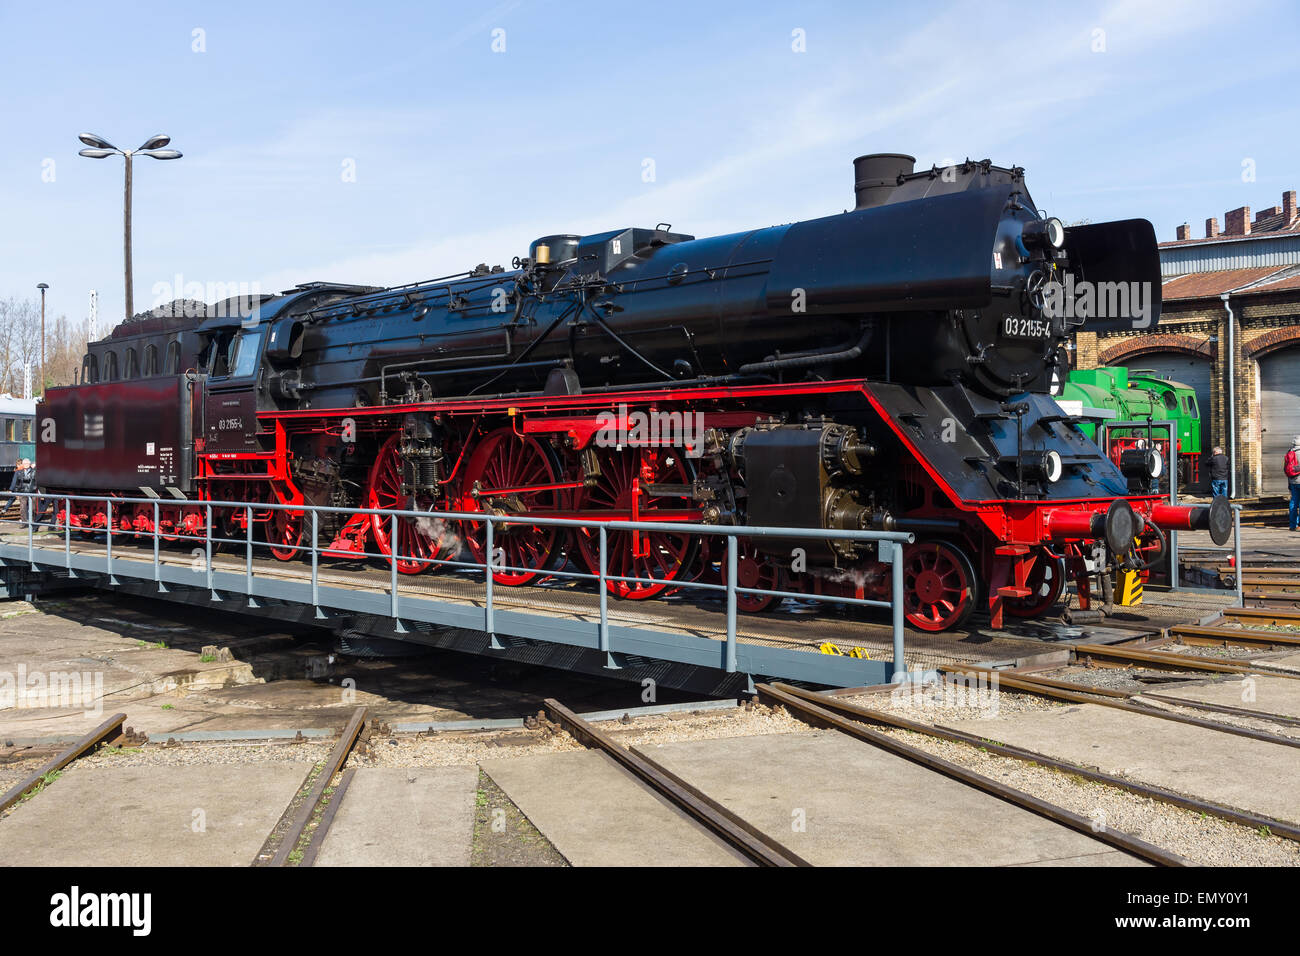 Steam locomotive Borsig 03 2155-4 (DRG Class 03)